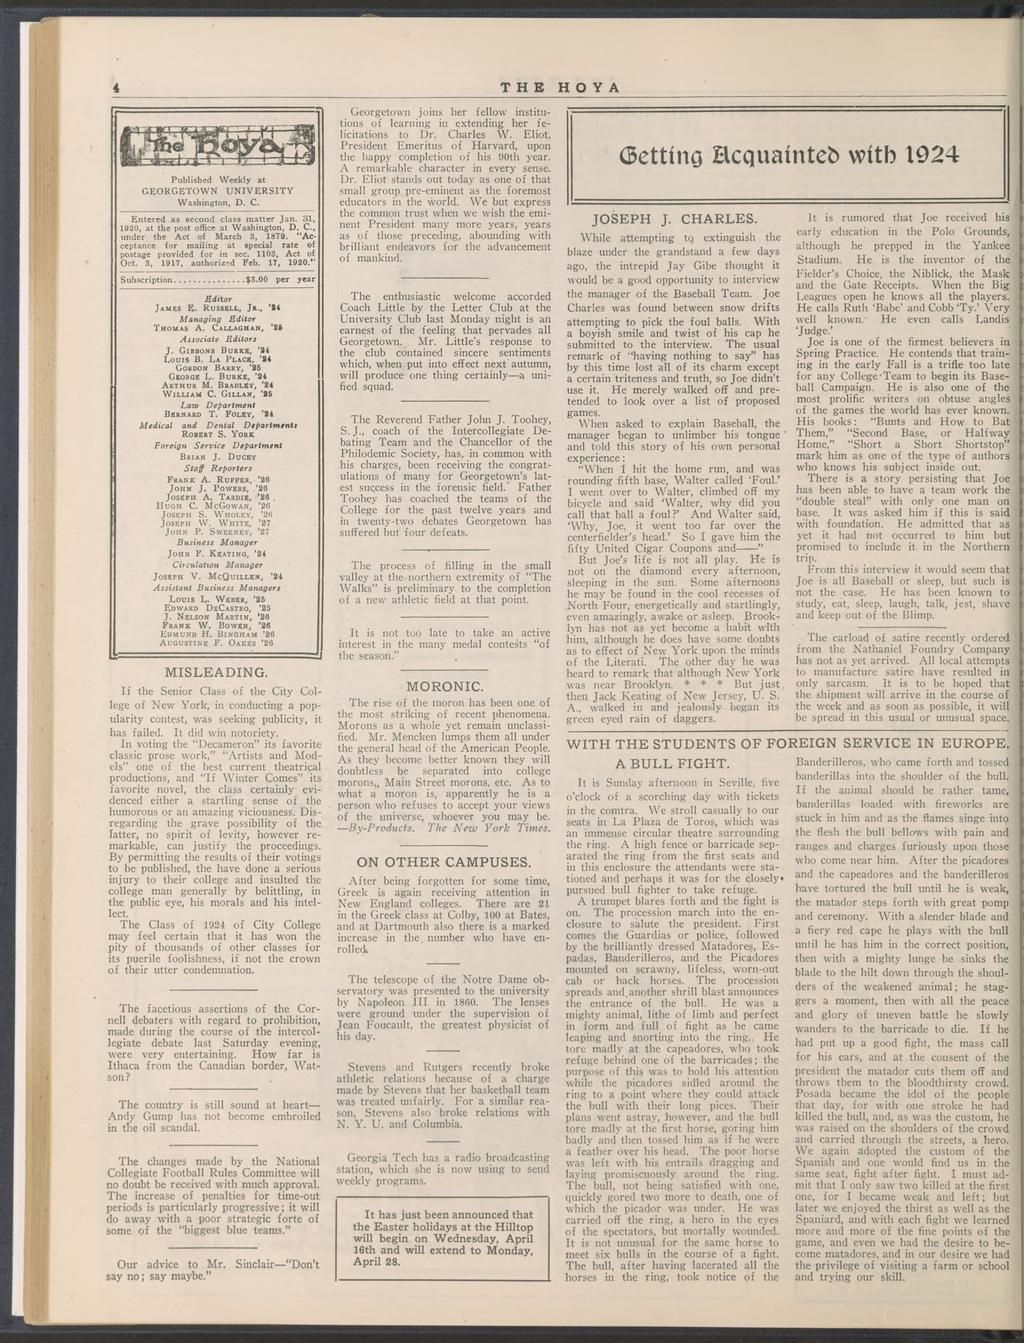 THE H O Y A Published Weekly at GEORGETOWN UNIVERSITY Washington, D. C. Entered as second class matter Jan. 31, 1920, at the post office at Washington, D. C, under the Act of March 3, 1879.